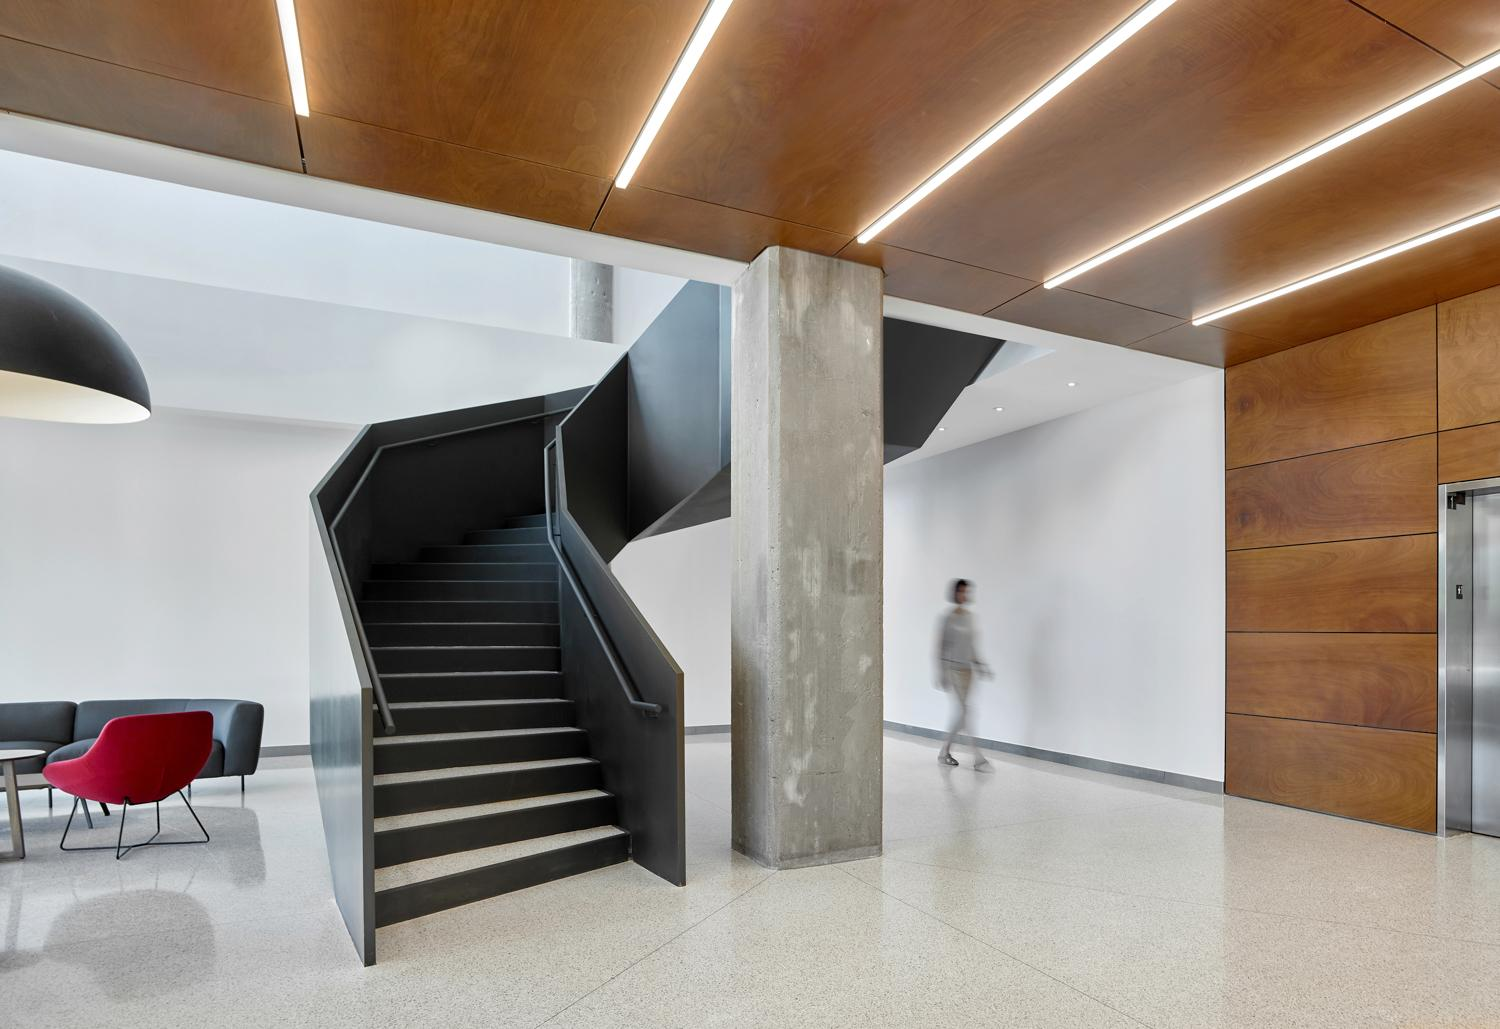 inside Bata Shoe Factory condo building showing black steel curving staircase, concrete pillar, and wood panel framed elevator bay and ceiling with inset LED strip lights